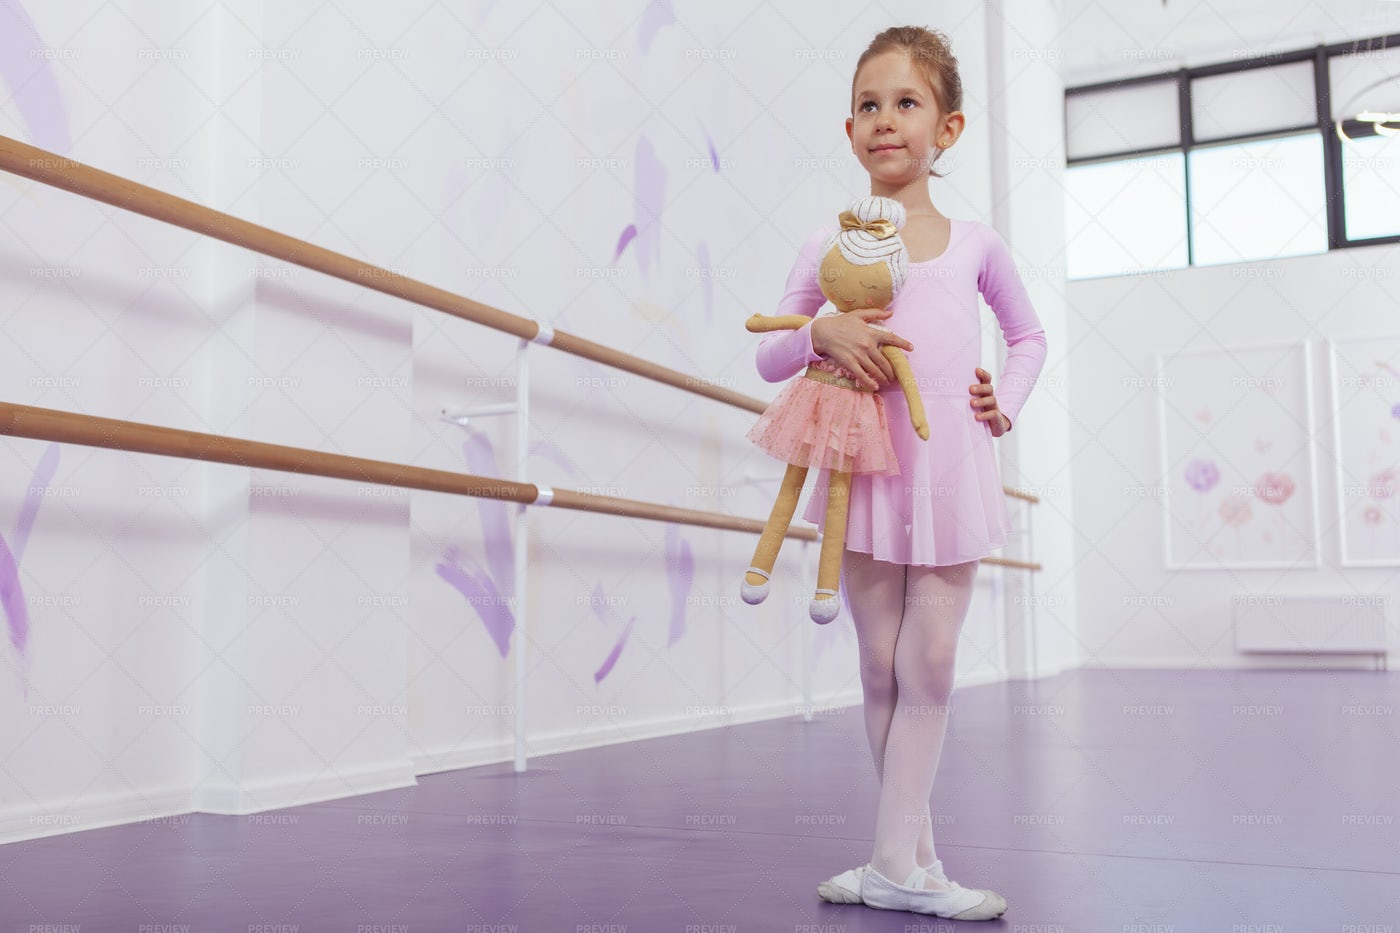 Ballerina Standing With Toy: Stock Photos